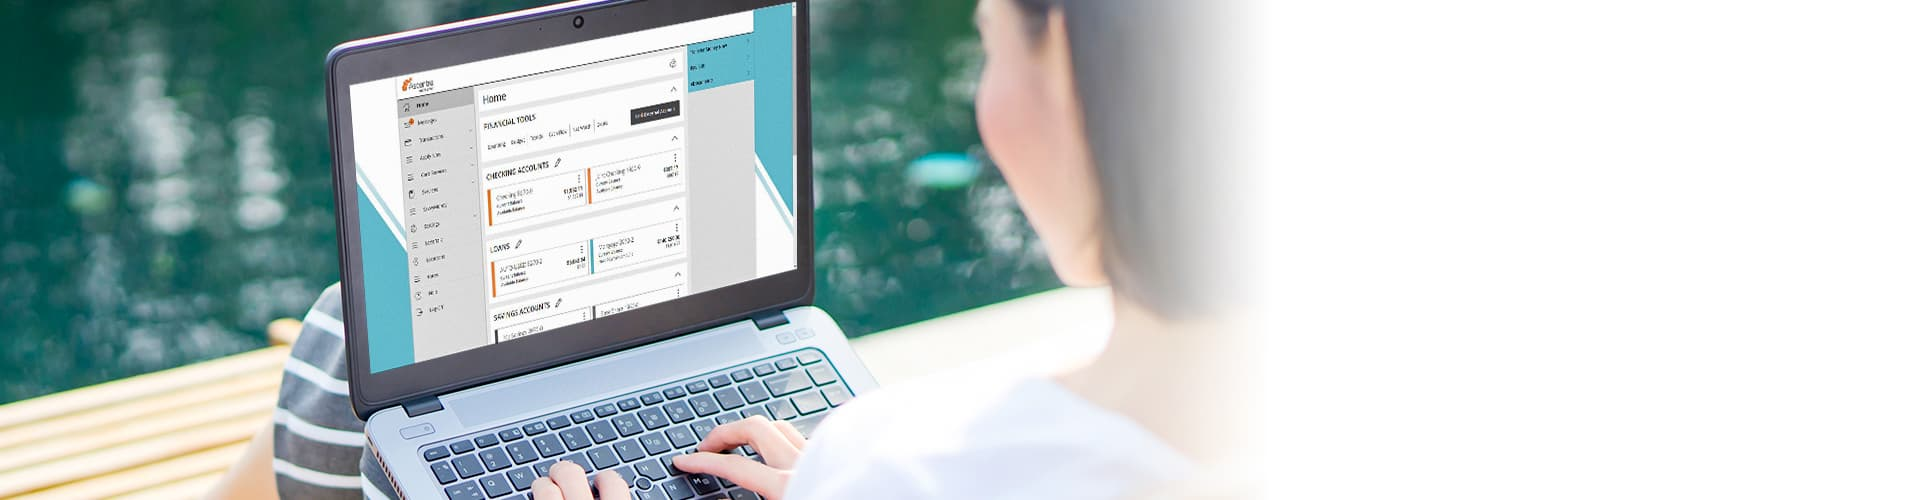 woman sitting on dock using laptop and looking at digital banking